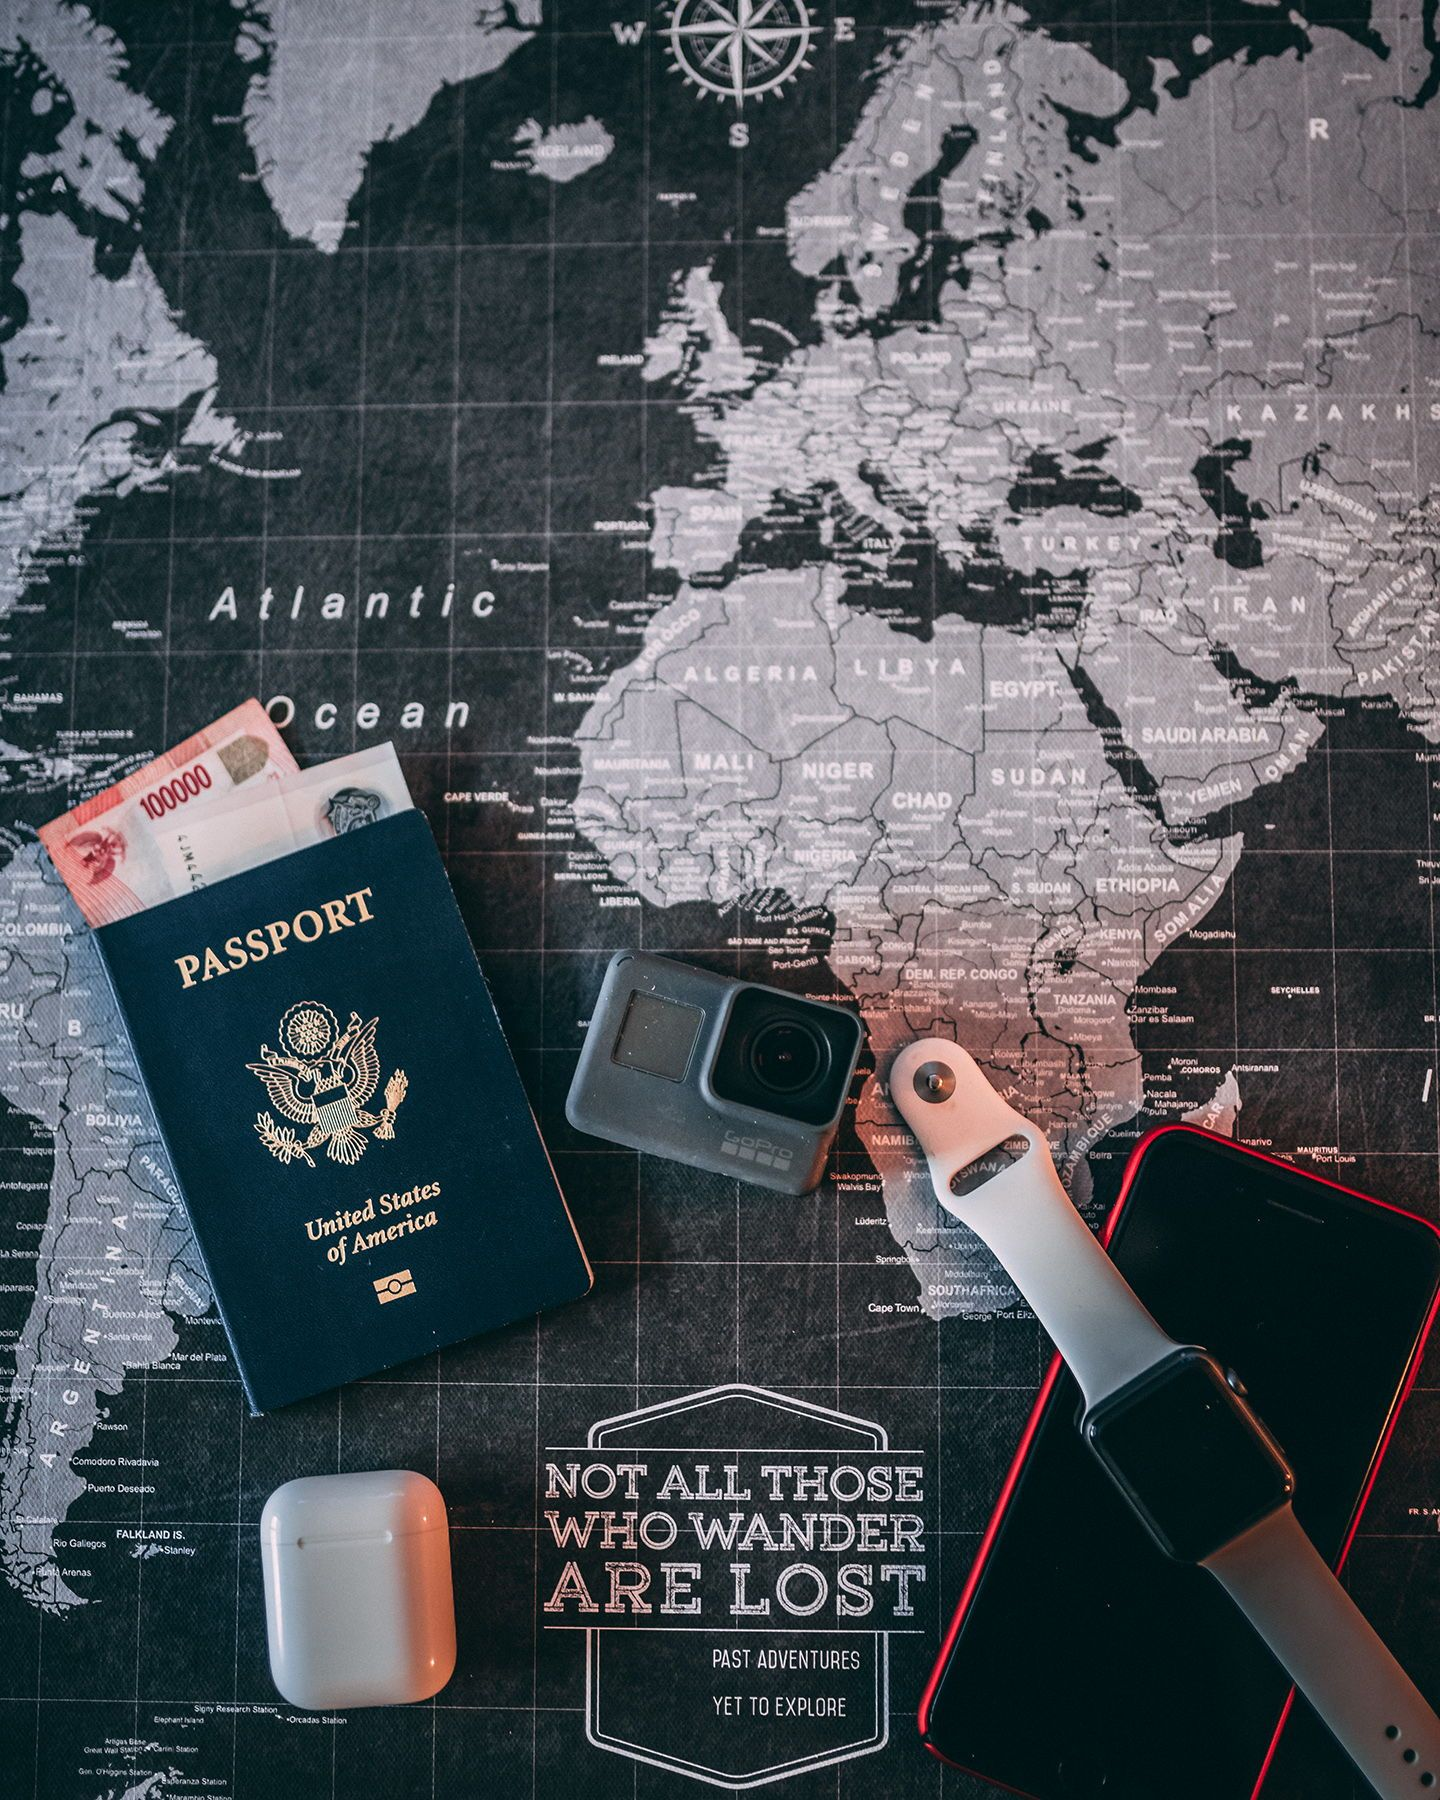 World Travel Map Pin Board Wpush Pins Modern Slate In 2019 - Personalized-us-travel-map-with-pins